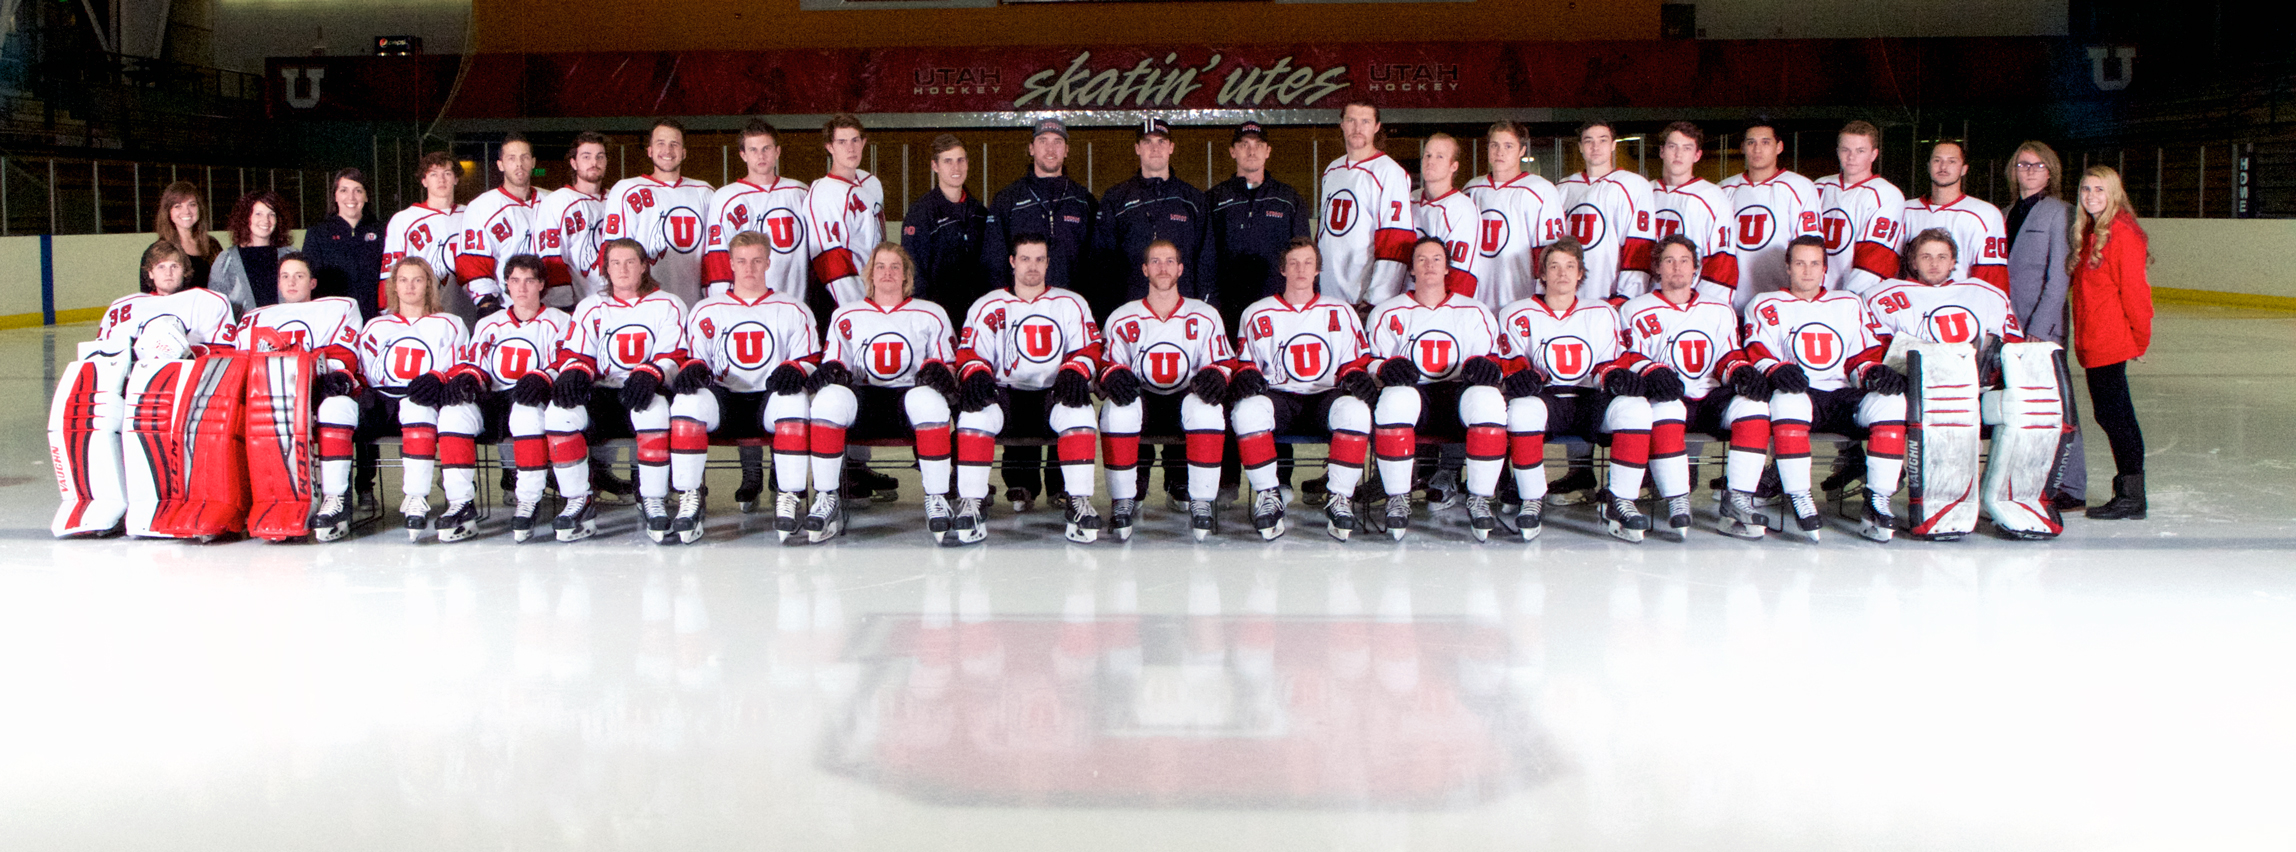 2015-16 University of Utah Hockey